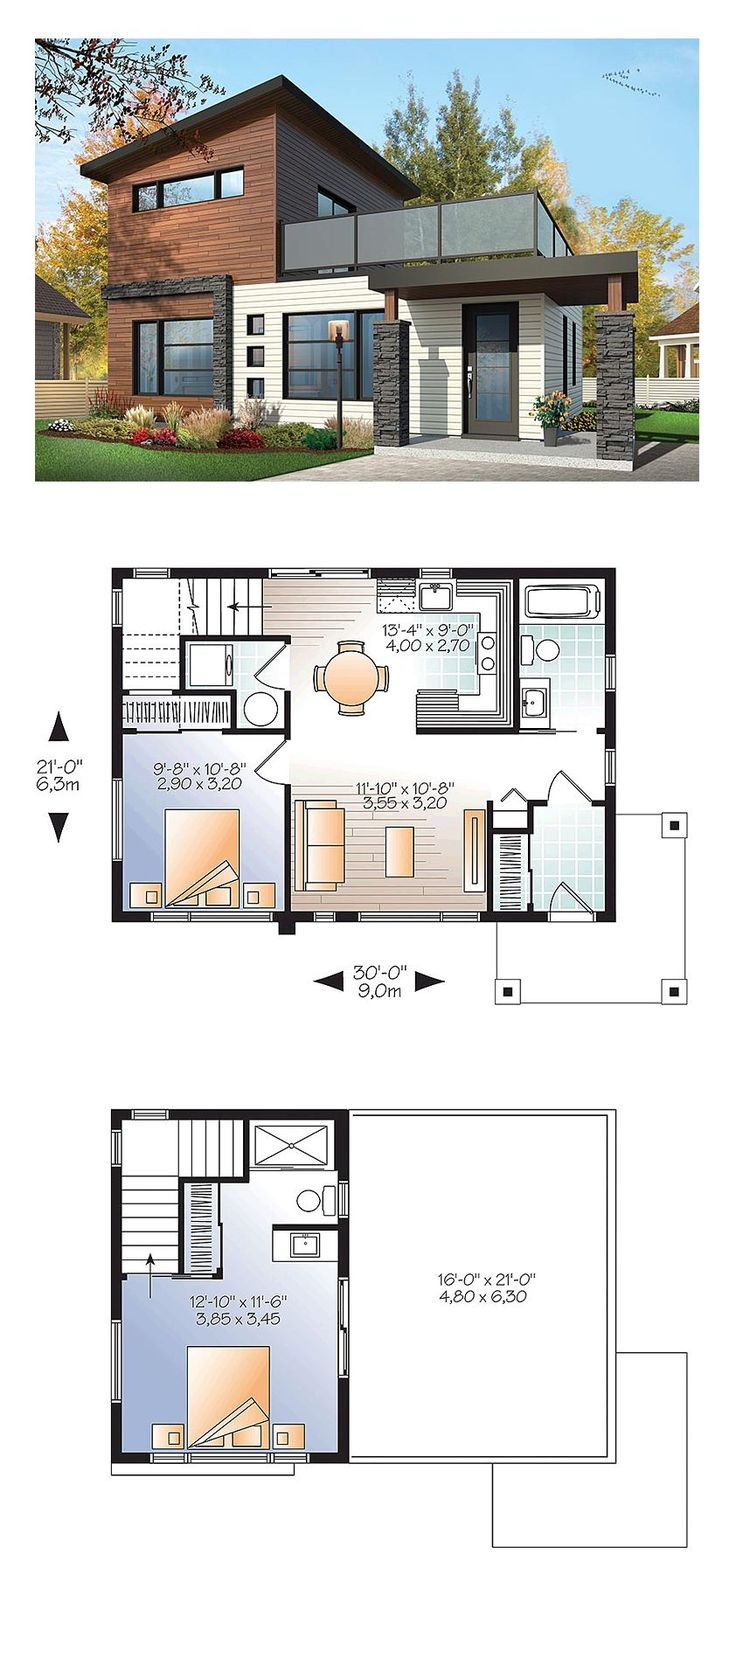 Modern house plan 76461 total living area 924 sq ft 2